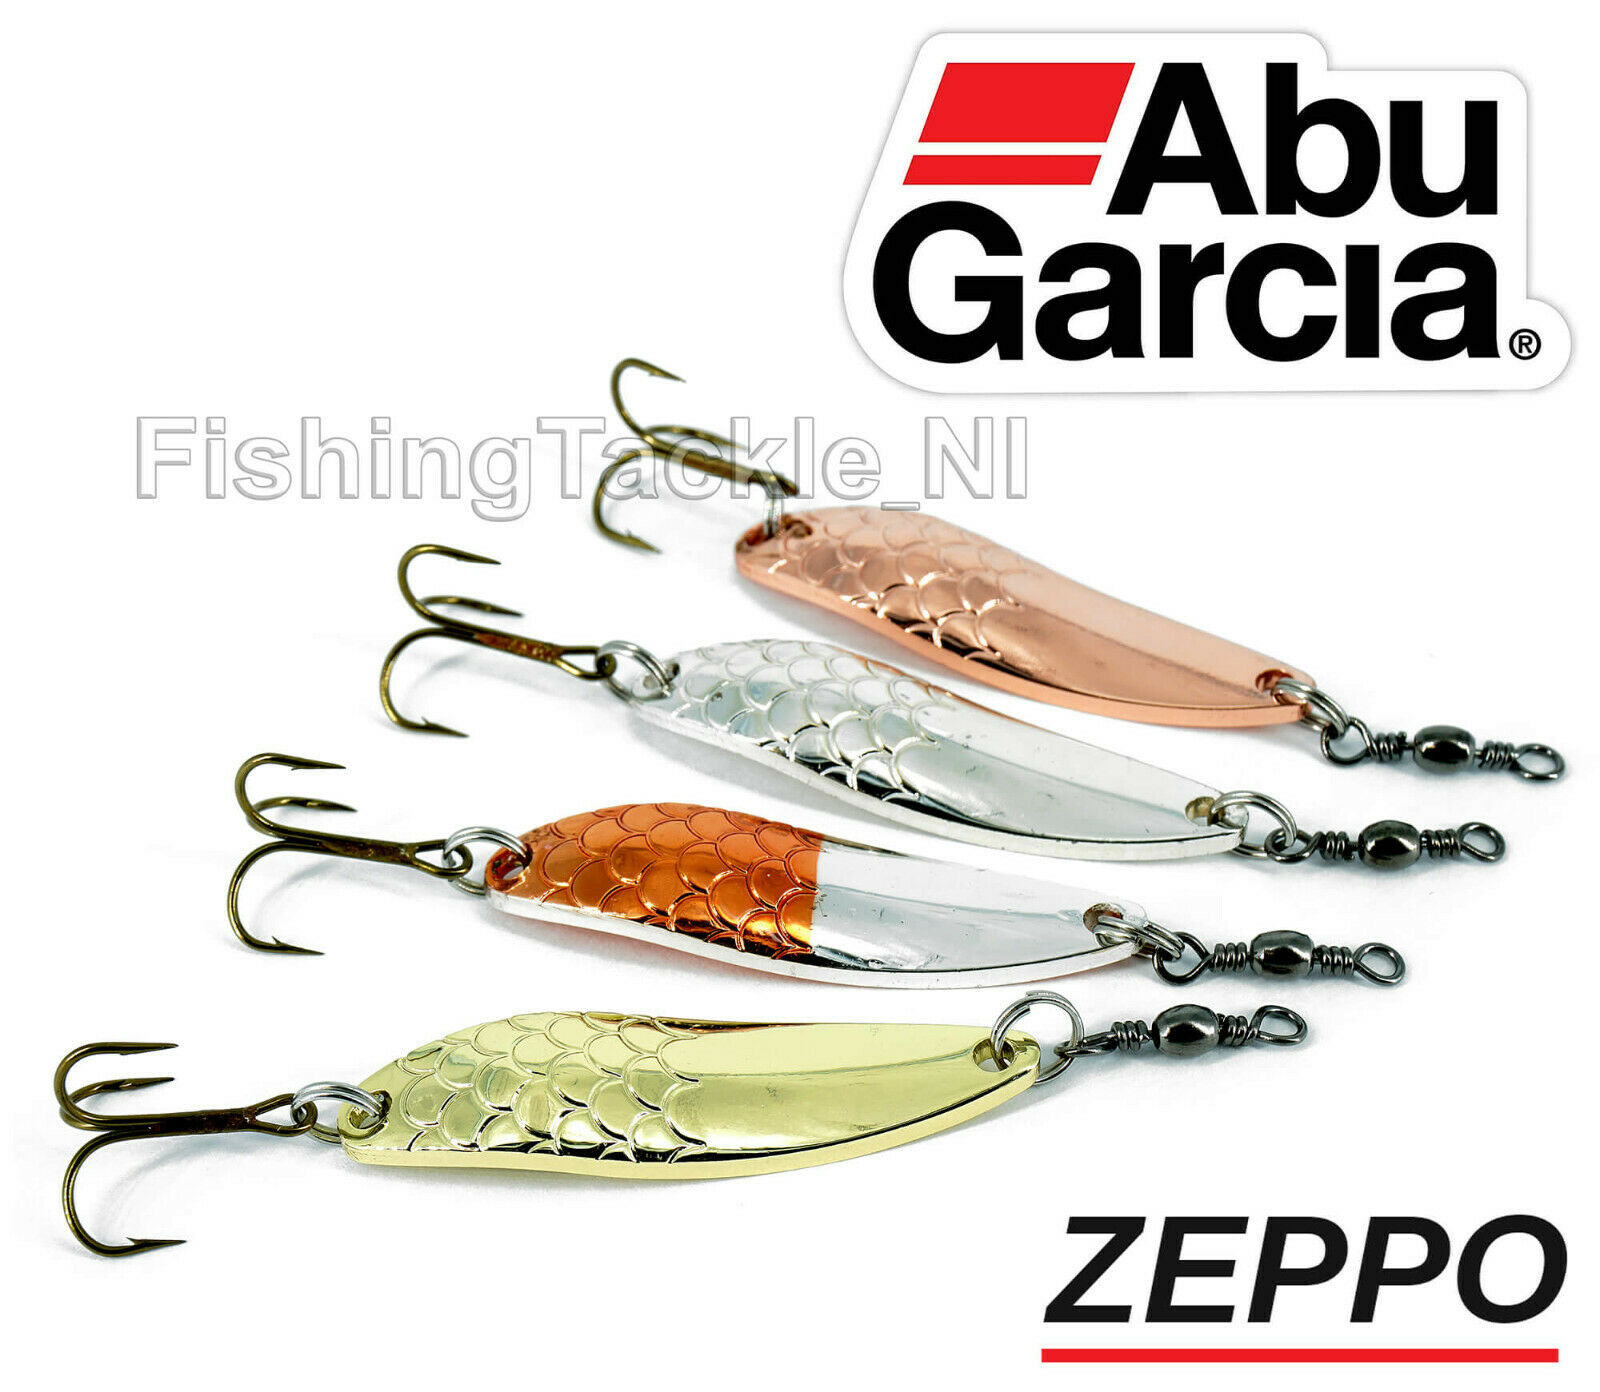 Abu Garcia Droppen Spinner Fishing Lures 7g-12g 4 Colours Best Selling Lure